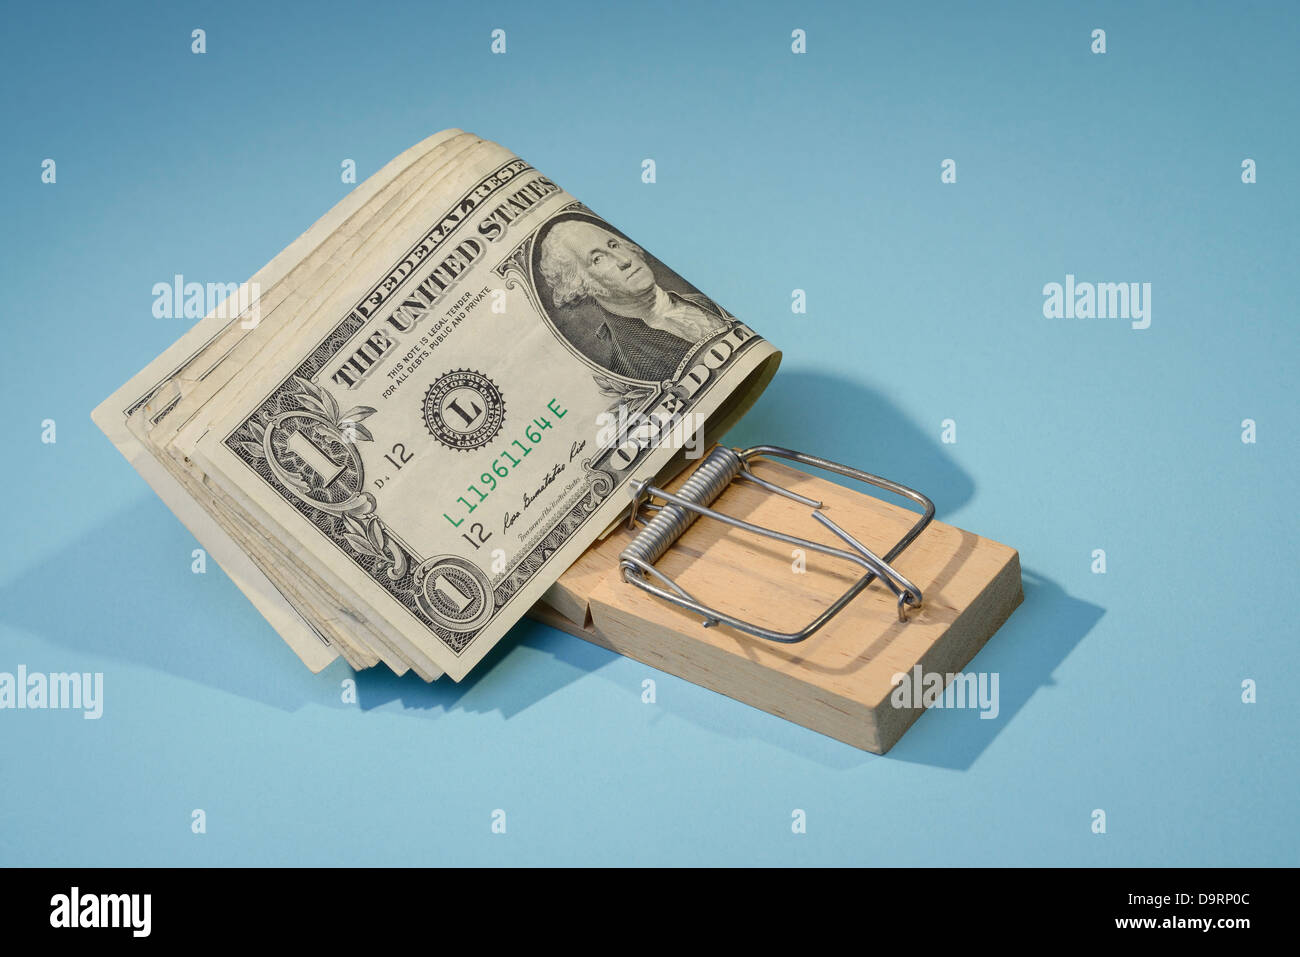 Dollar bills in a mousetrap - Stock Image